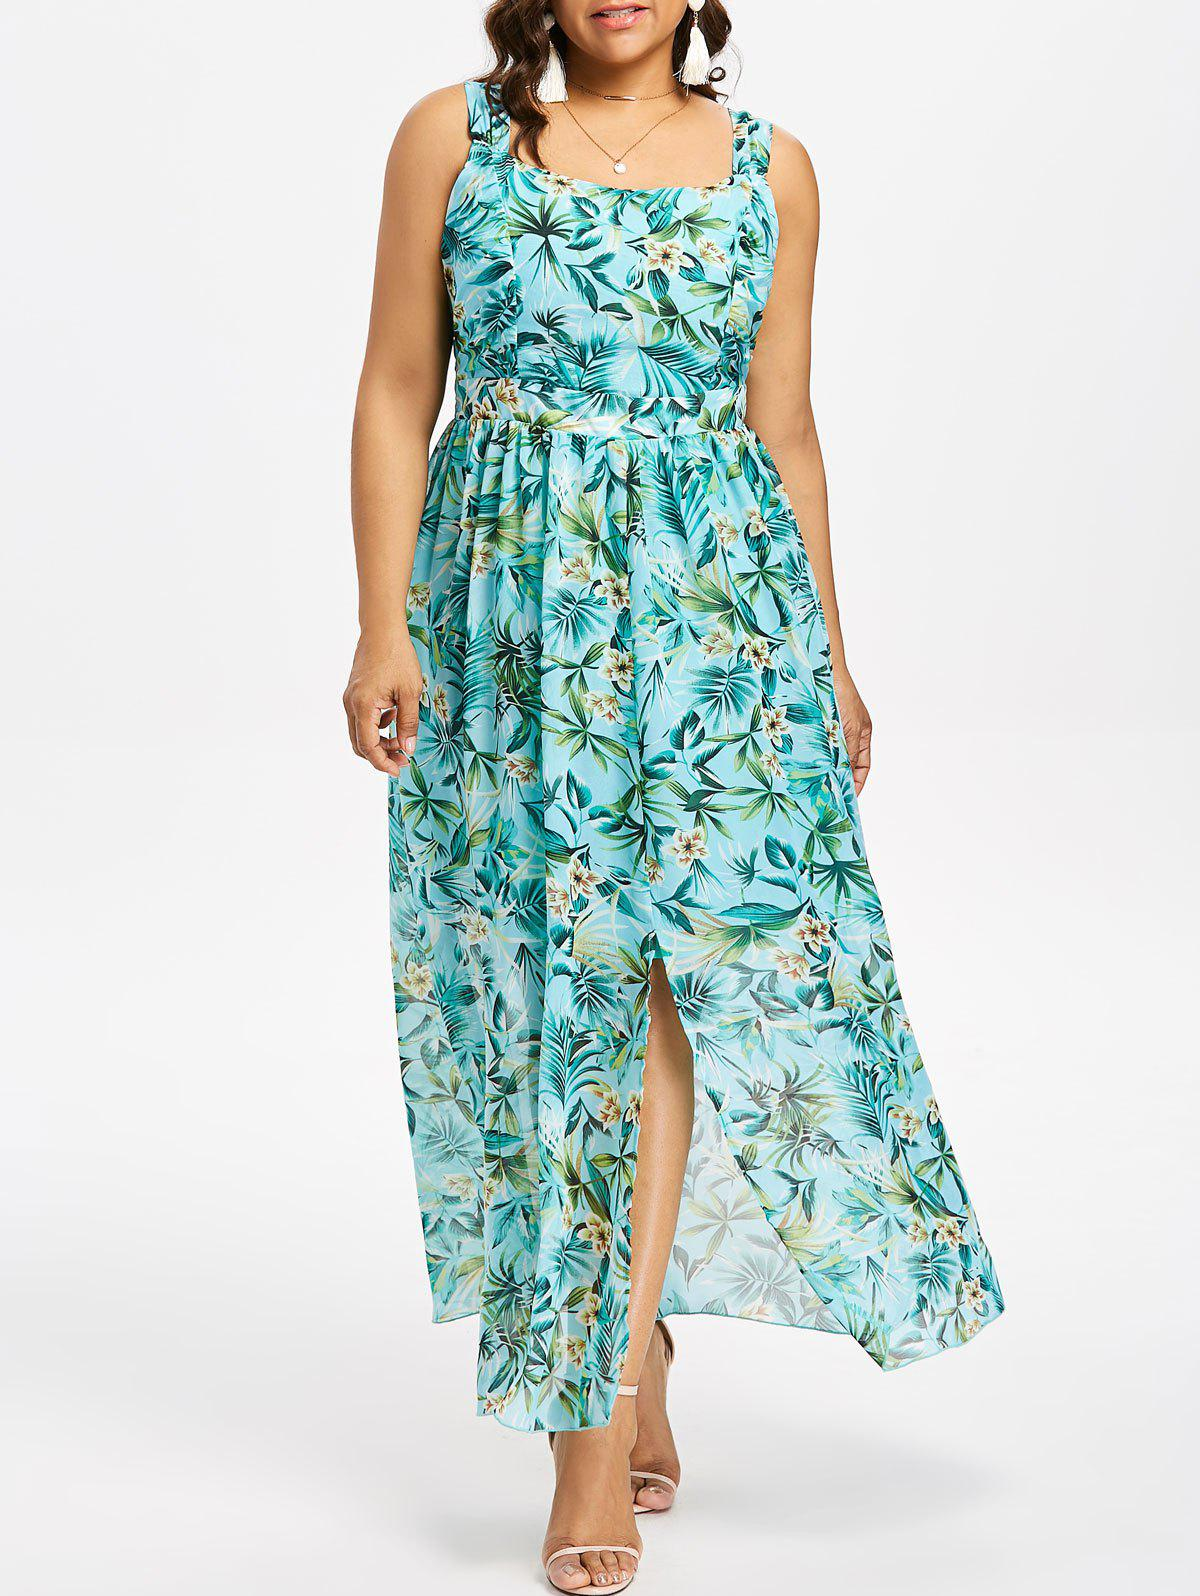 46% OFF] Plus Size Floral Square Neck Maxi Flowing Dress | Rosegal